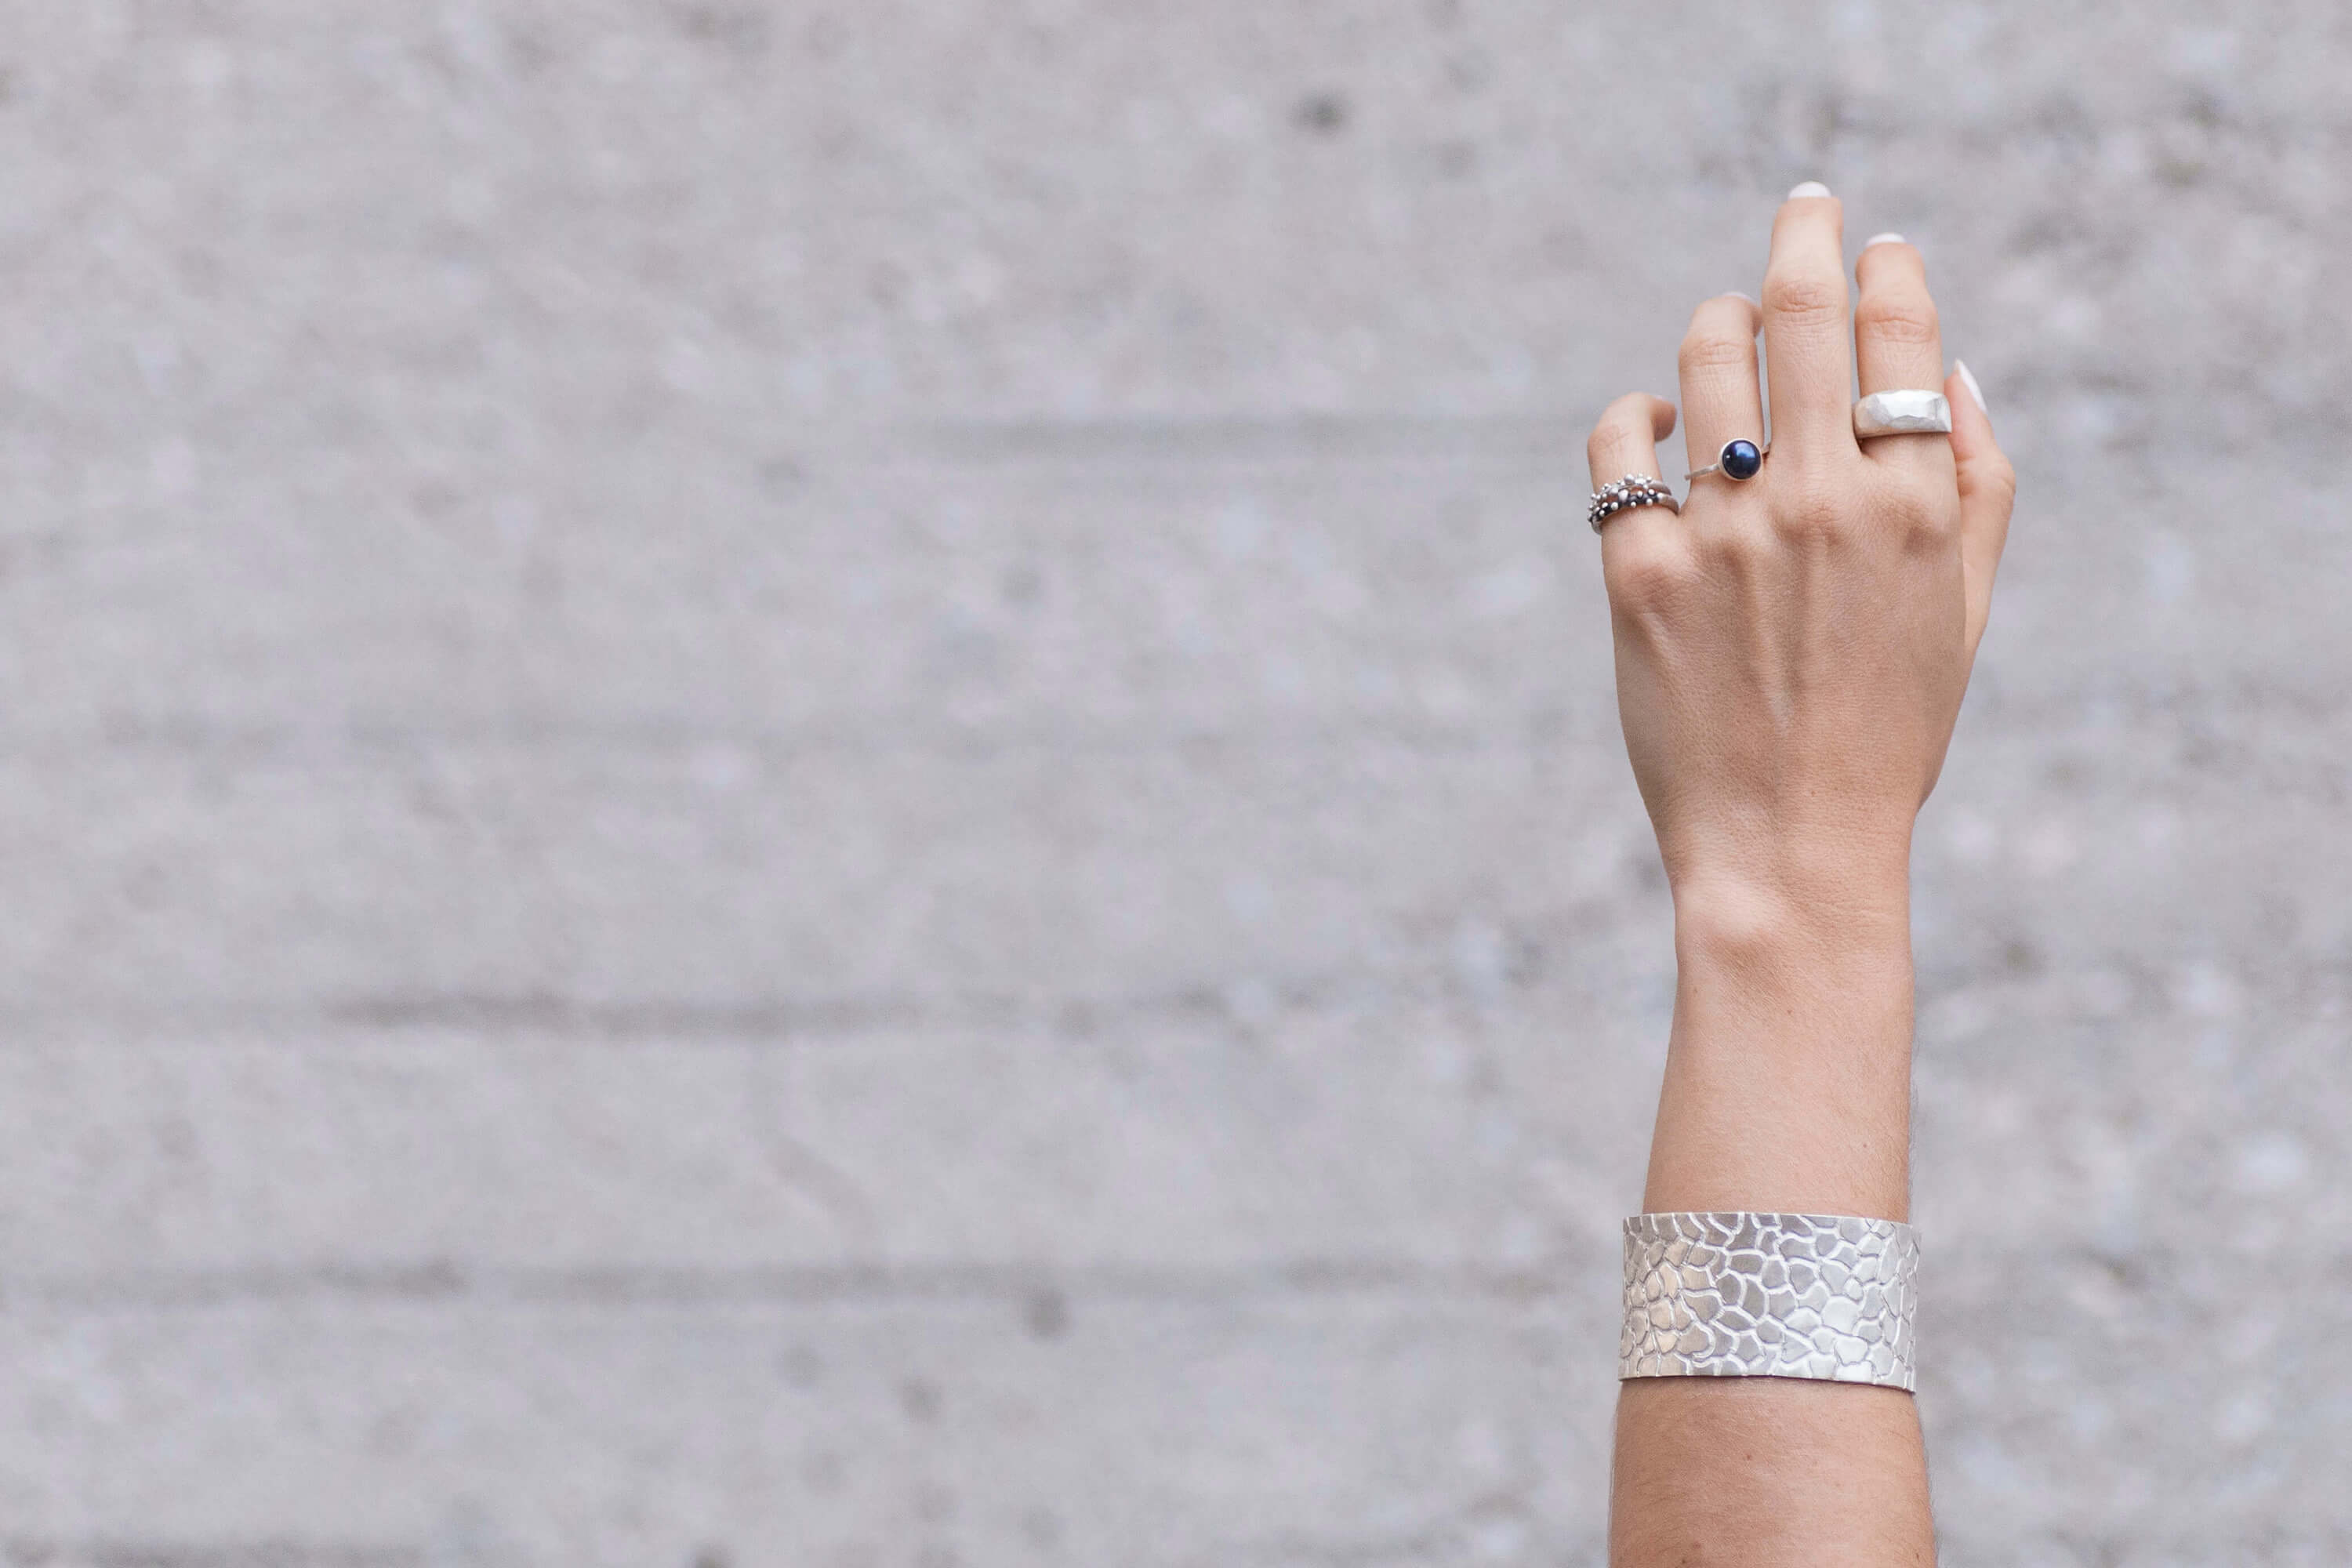 Hand with two thin bubble rings, one black pearl ring, one polygon ring and a bracelet on